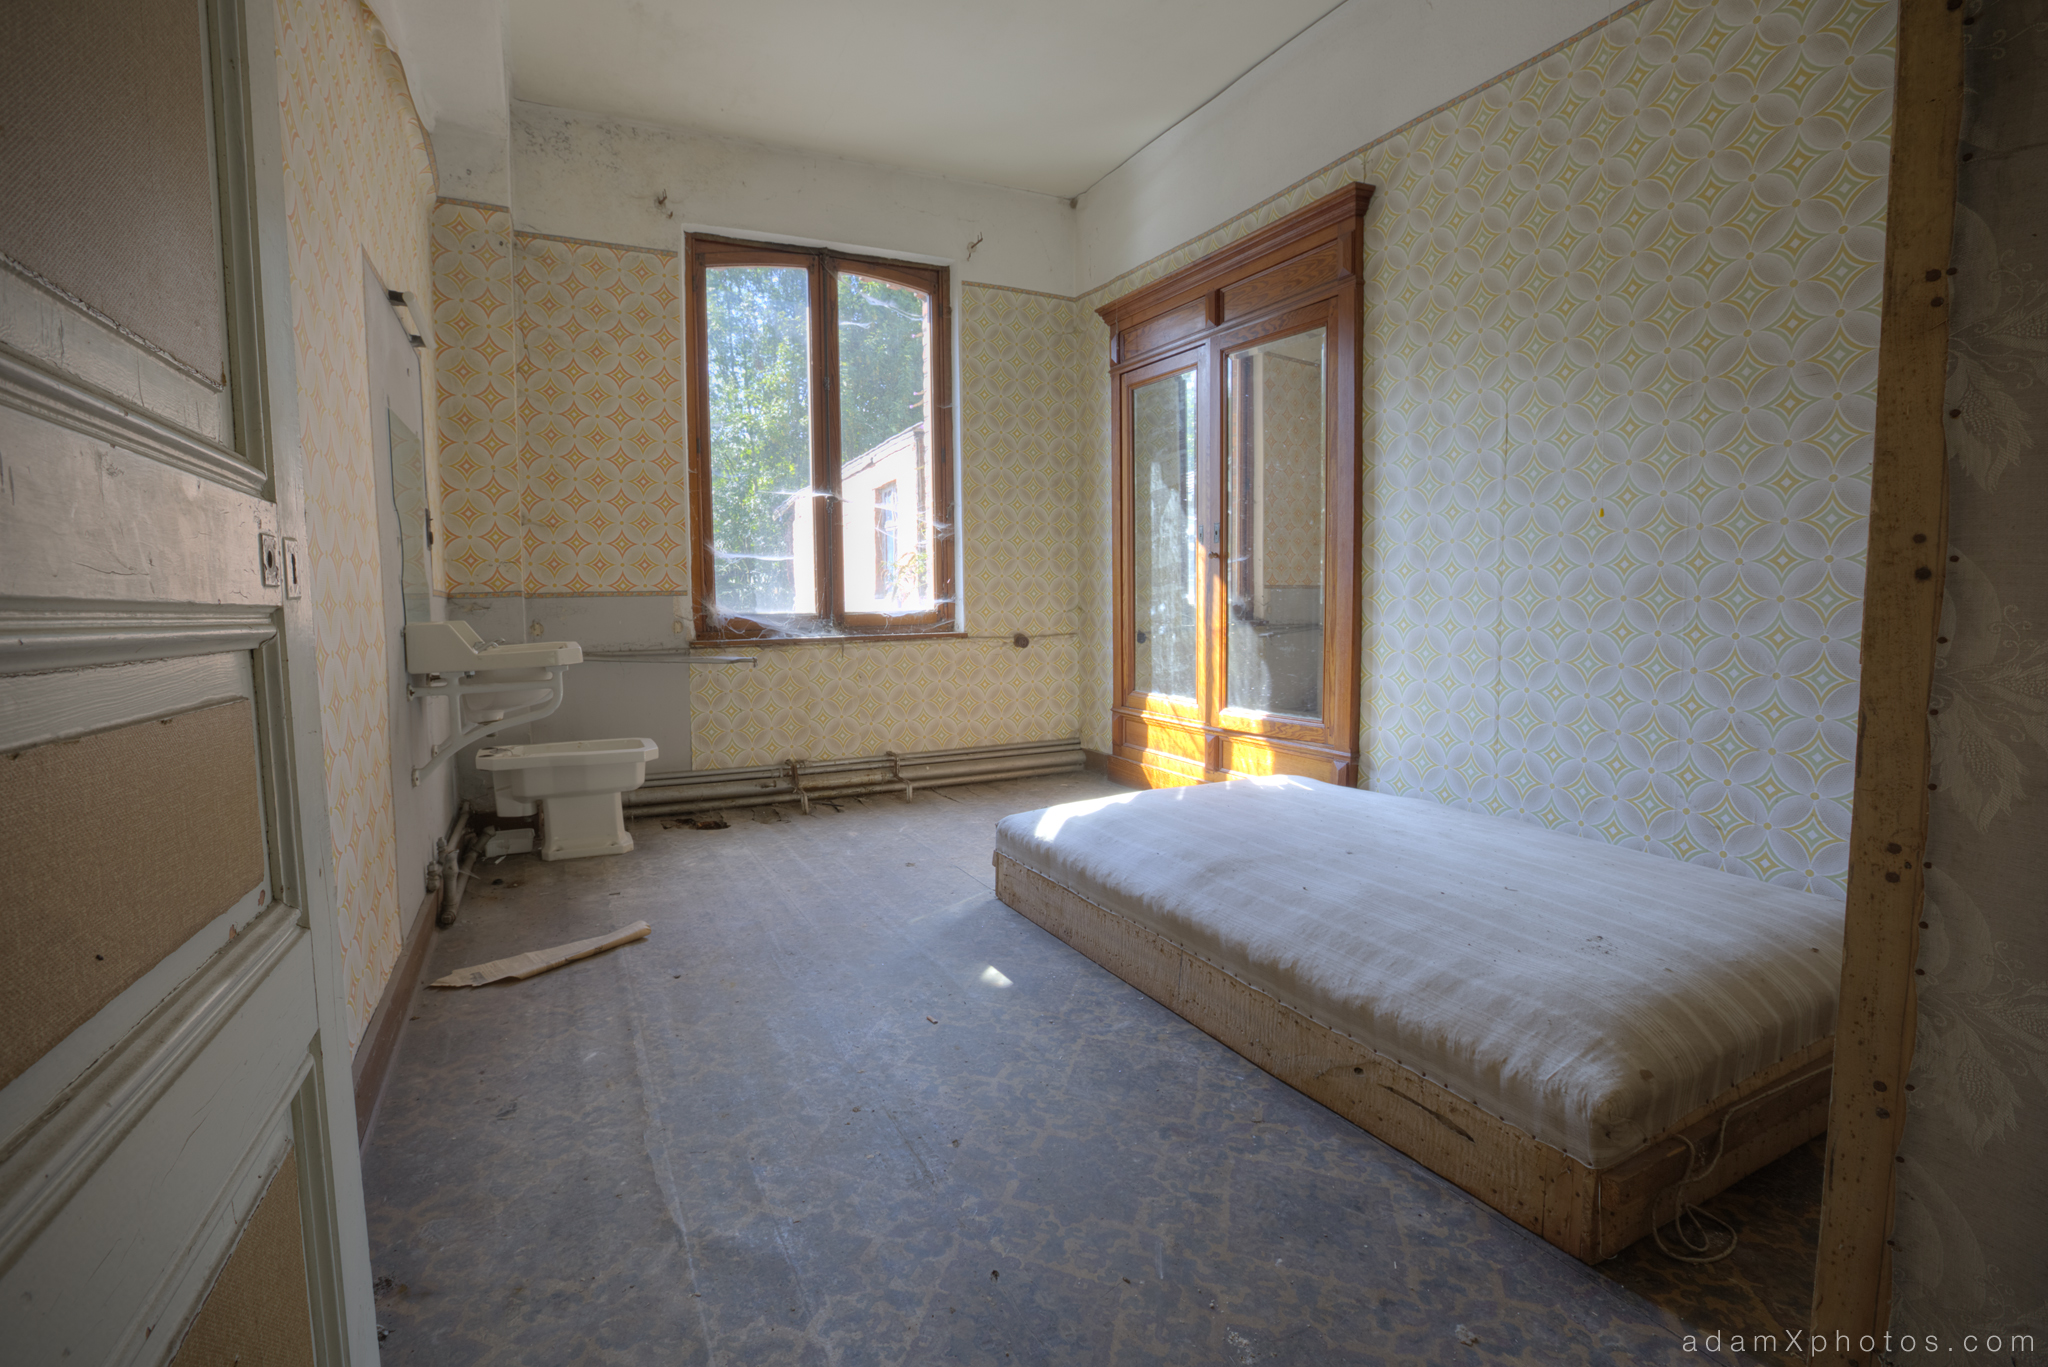 Adam X Urbex Urban Exploration Grand Hotel Regnier bedroom Belgium